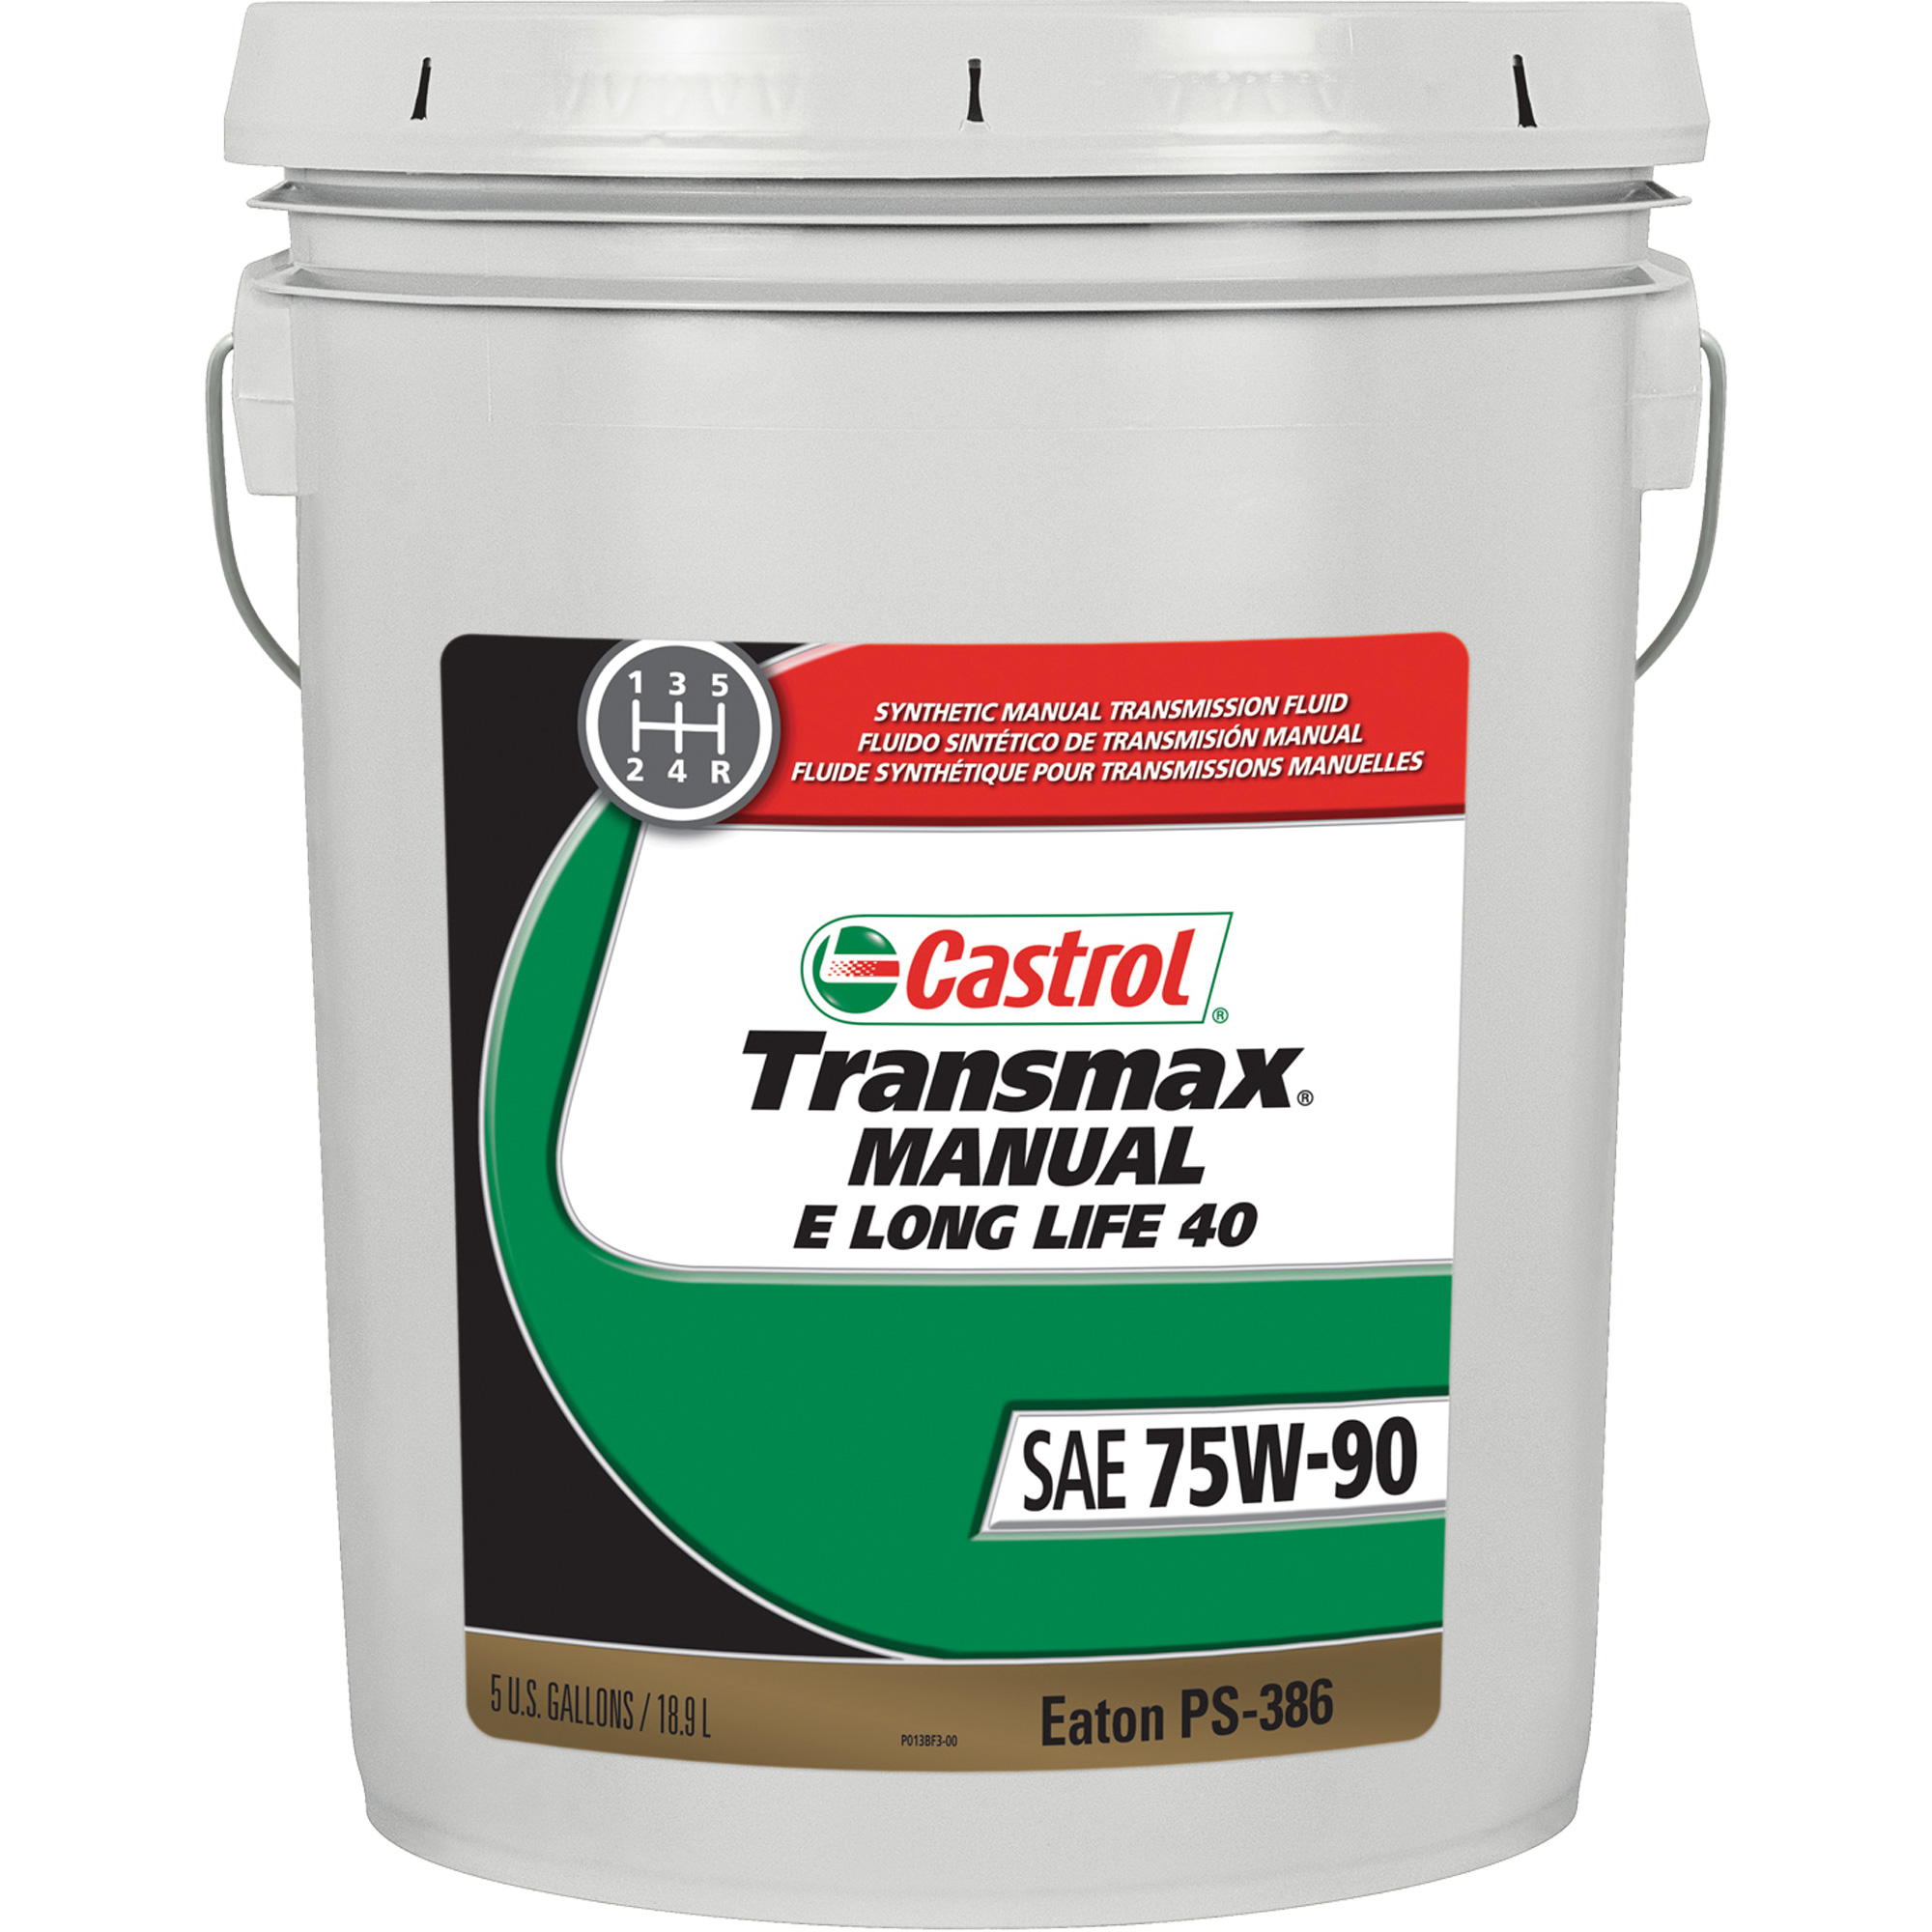 Transmax Manual E Long-Life 40 Synthetic Transmission Fluid